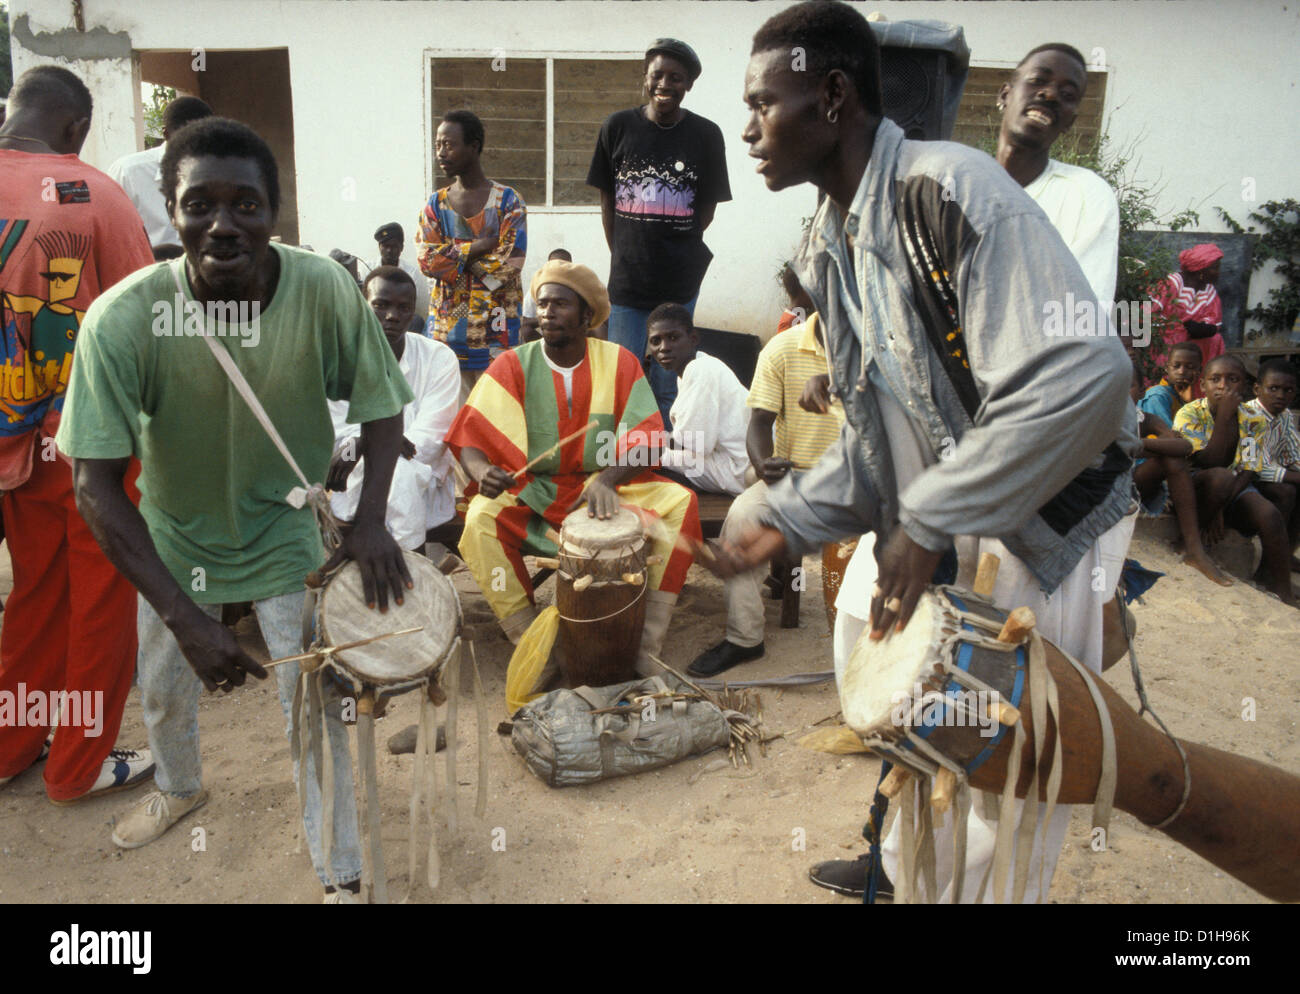 A local band in The Gambia with two drummers - Stock Image